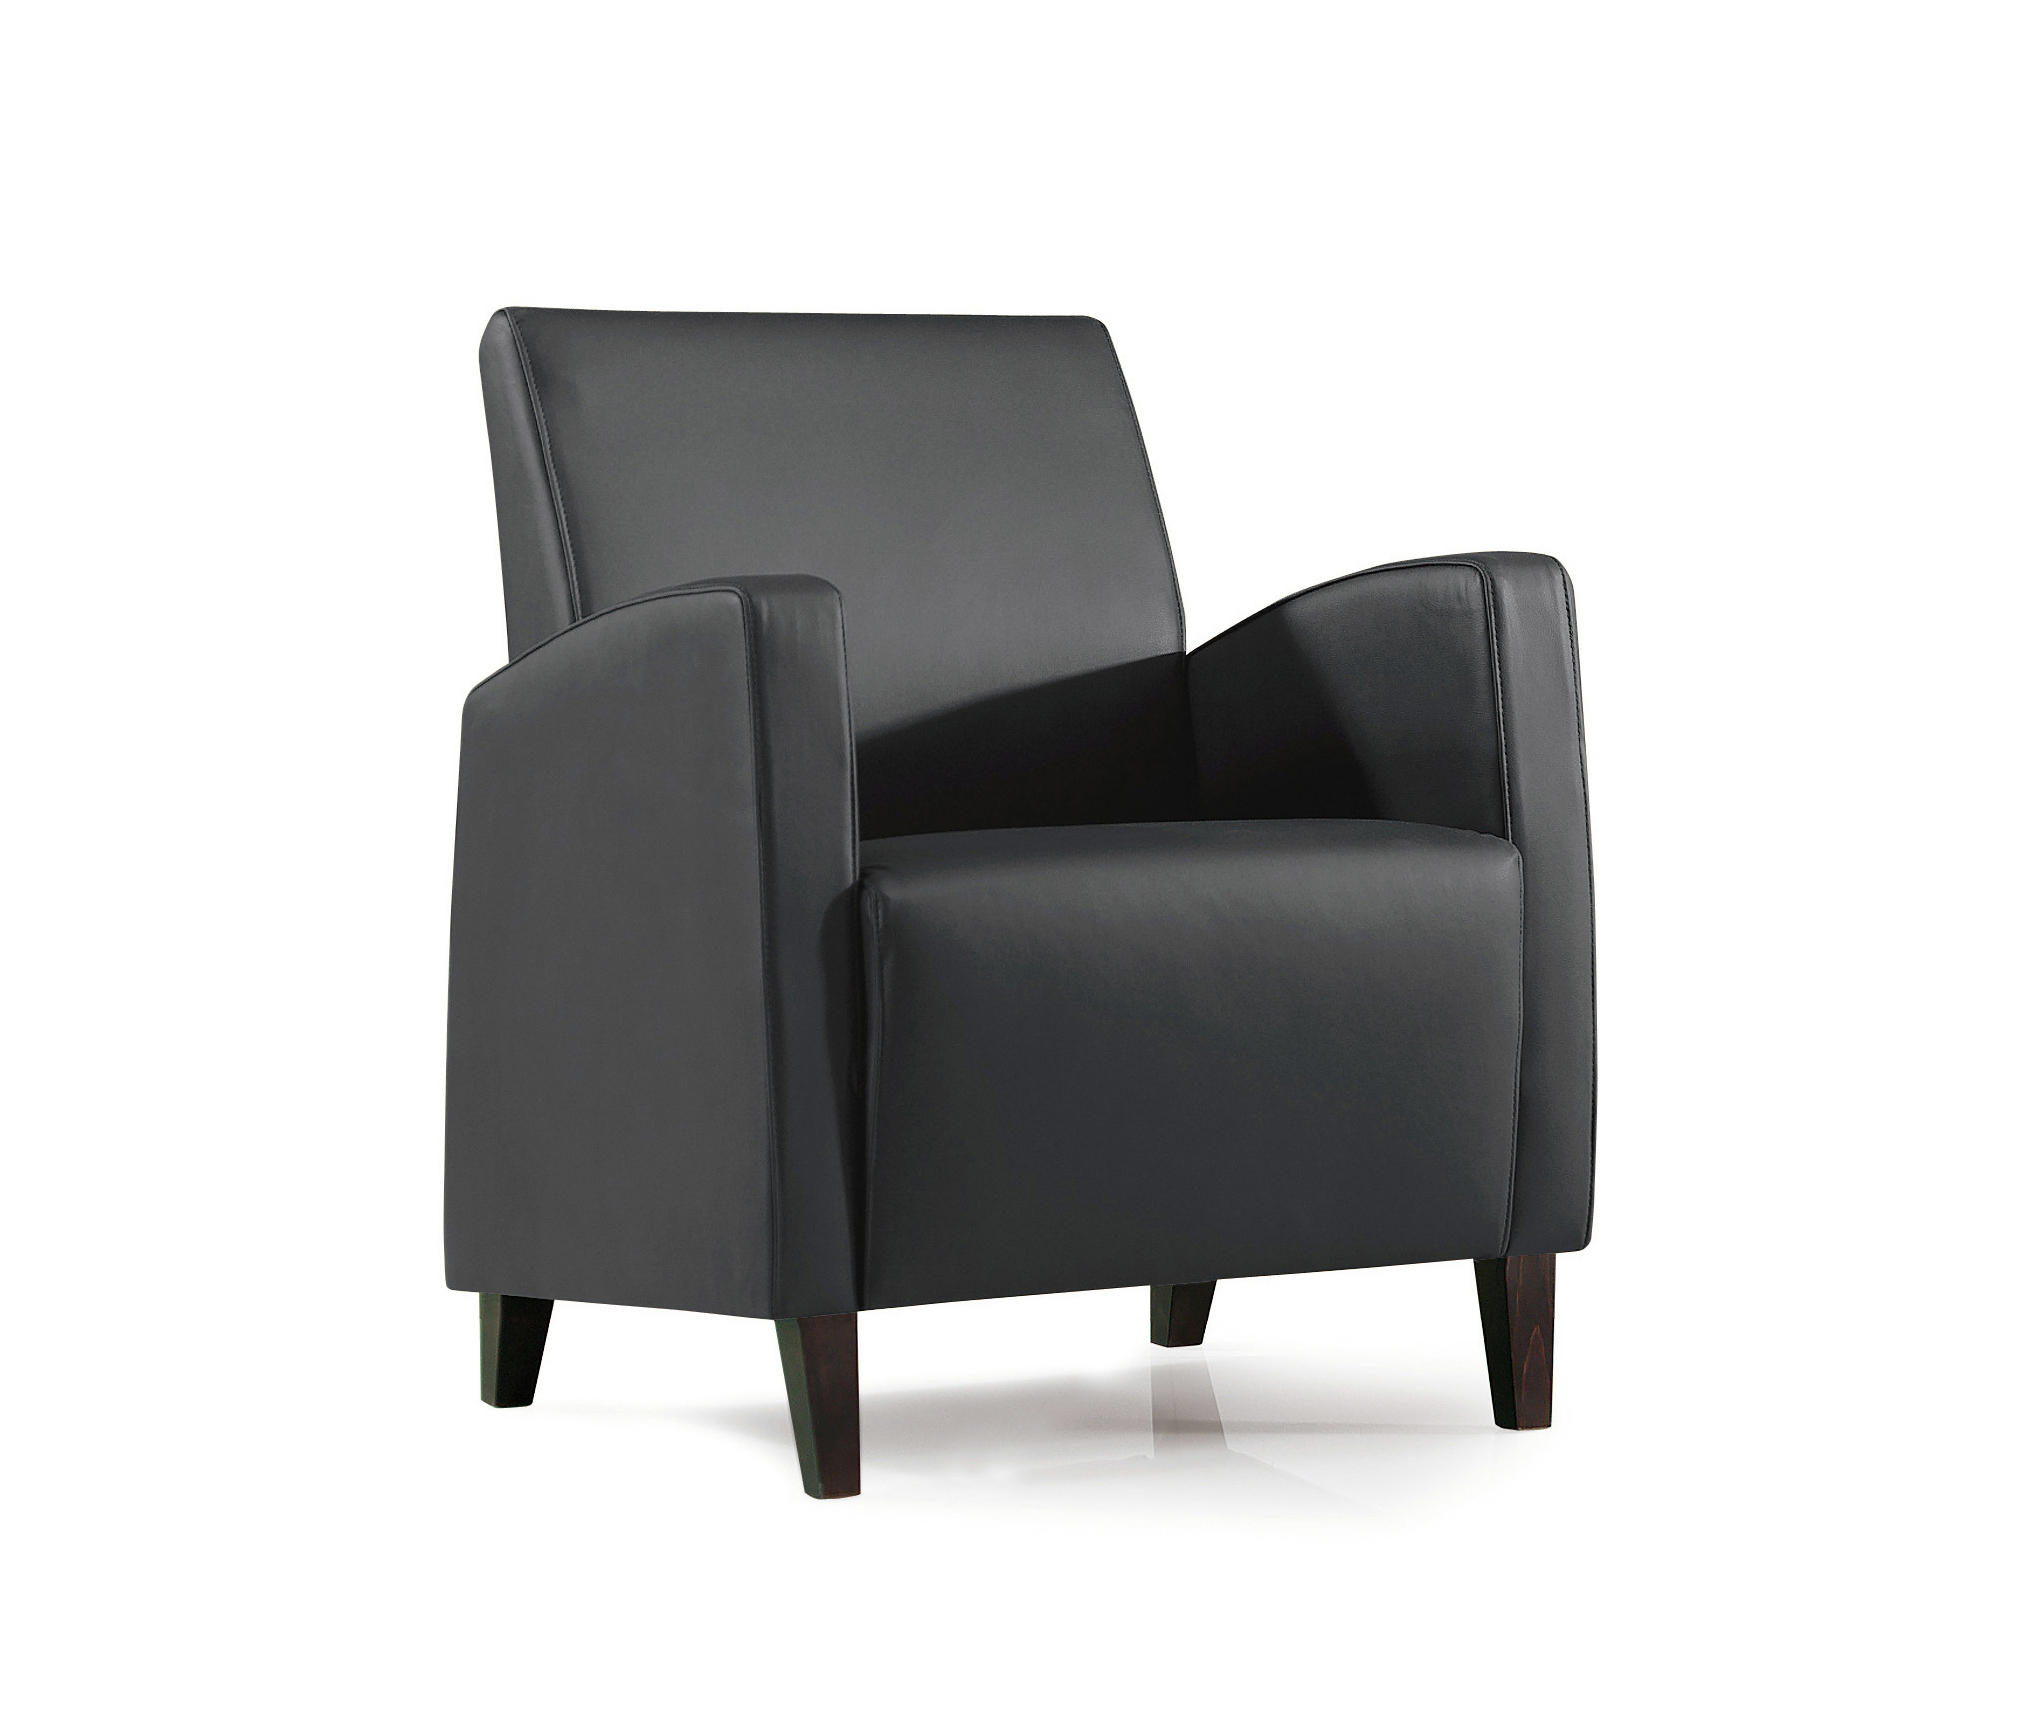 nomada fauteuils d 39 attente de sancal architonic. Black Bedroom Furniture Sets. Home Design Ideas